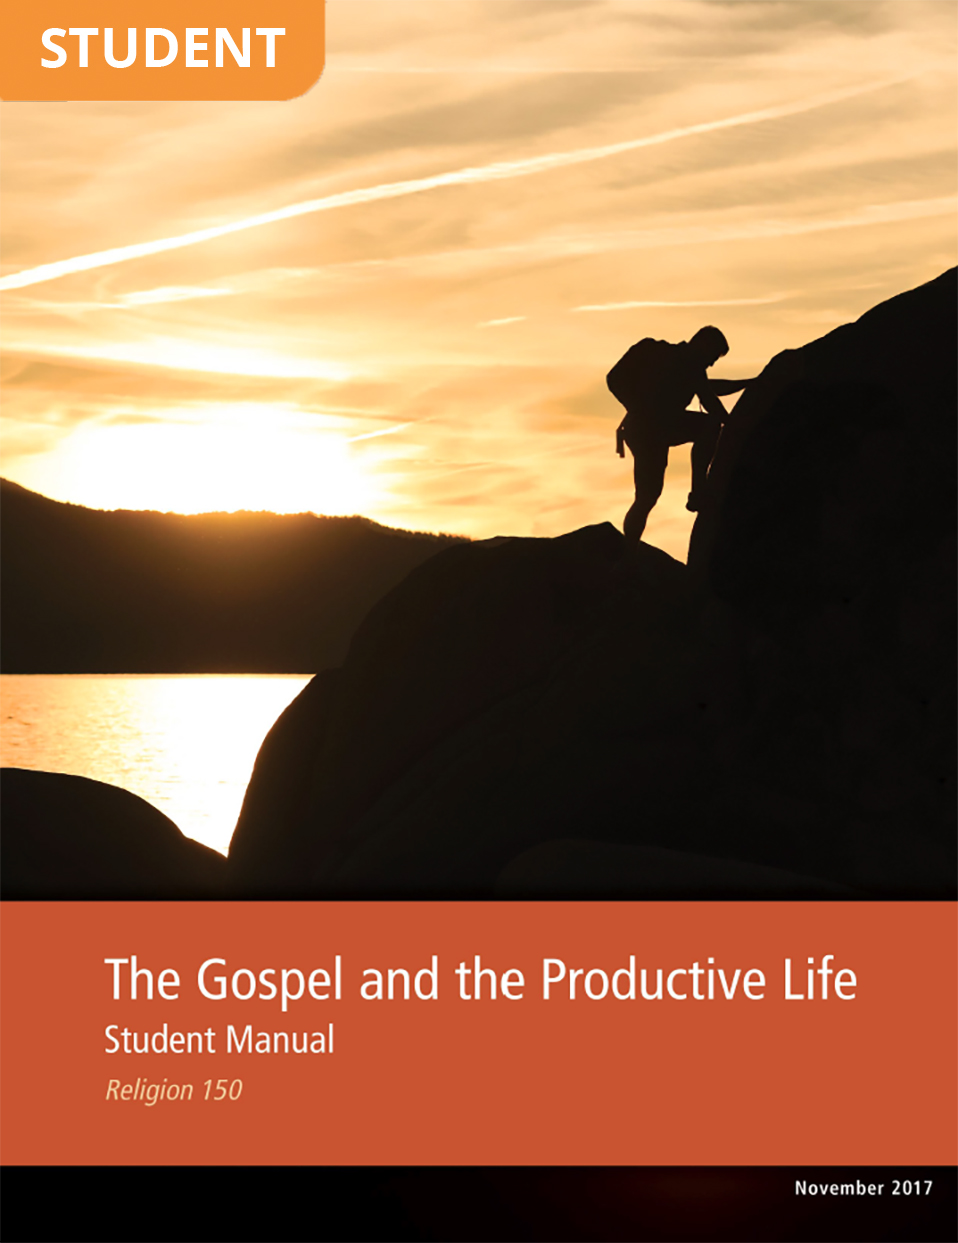 The Gospel and the Productive Life Student Manual (Rel 150)